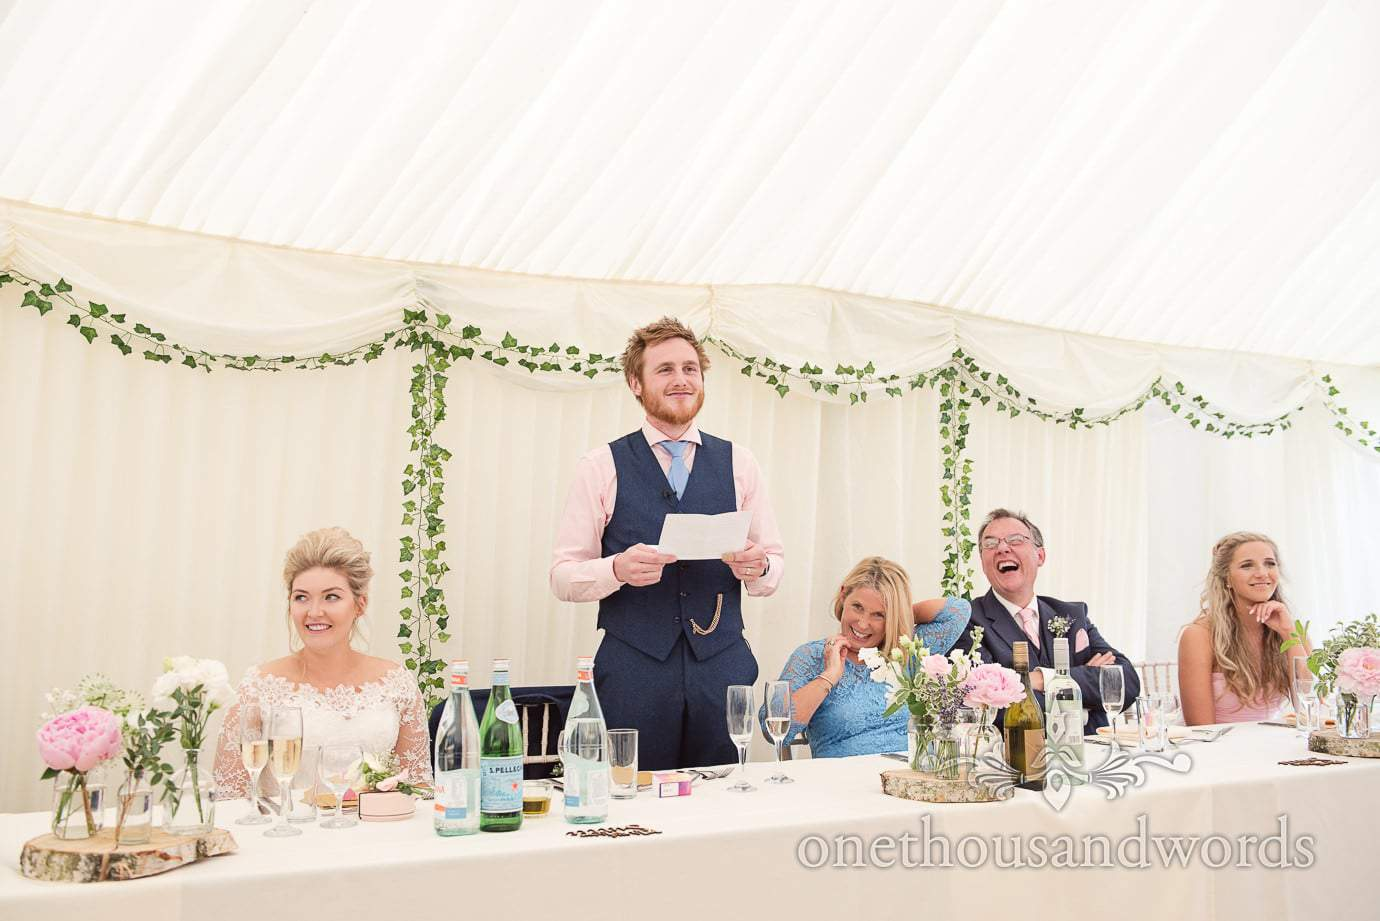 Groom in pink shirt and blue quit makes wedding speech in country wedding marquee